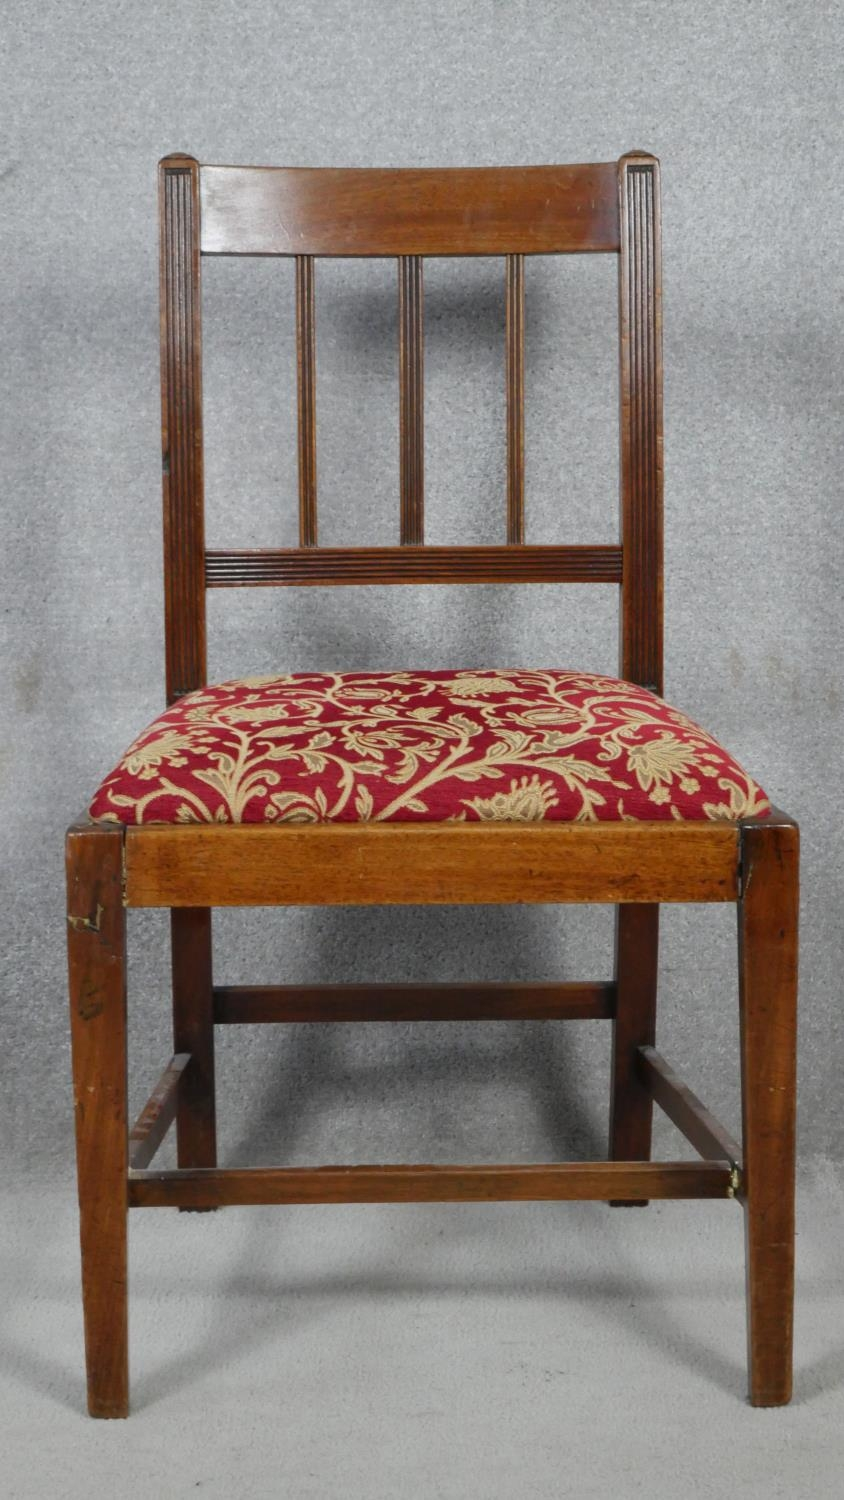 A set of six 19th century mahogany bar back dining chairs with reeded slats above drop in seats on - Image 2 of 4